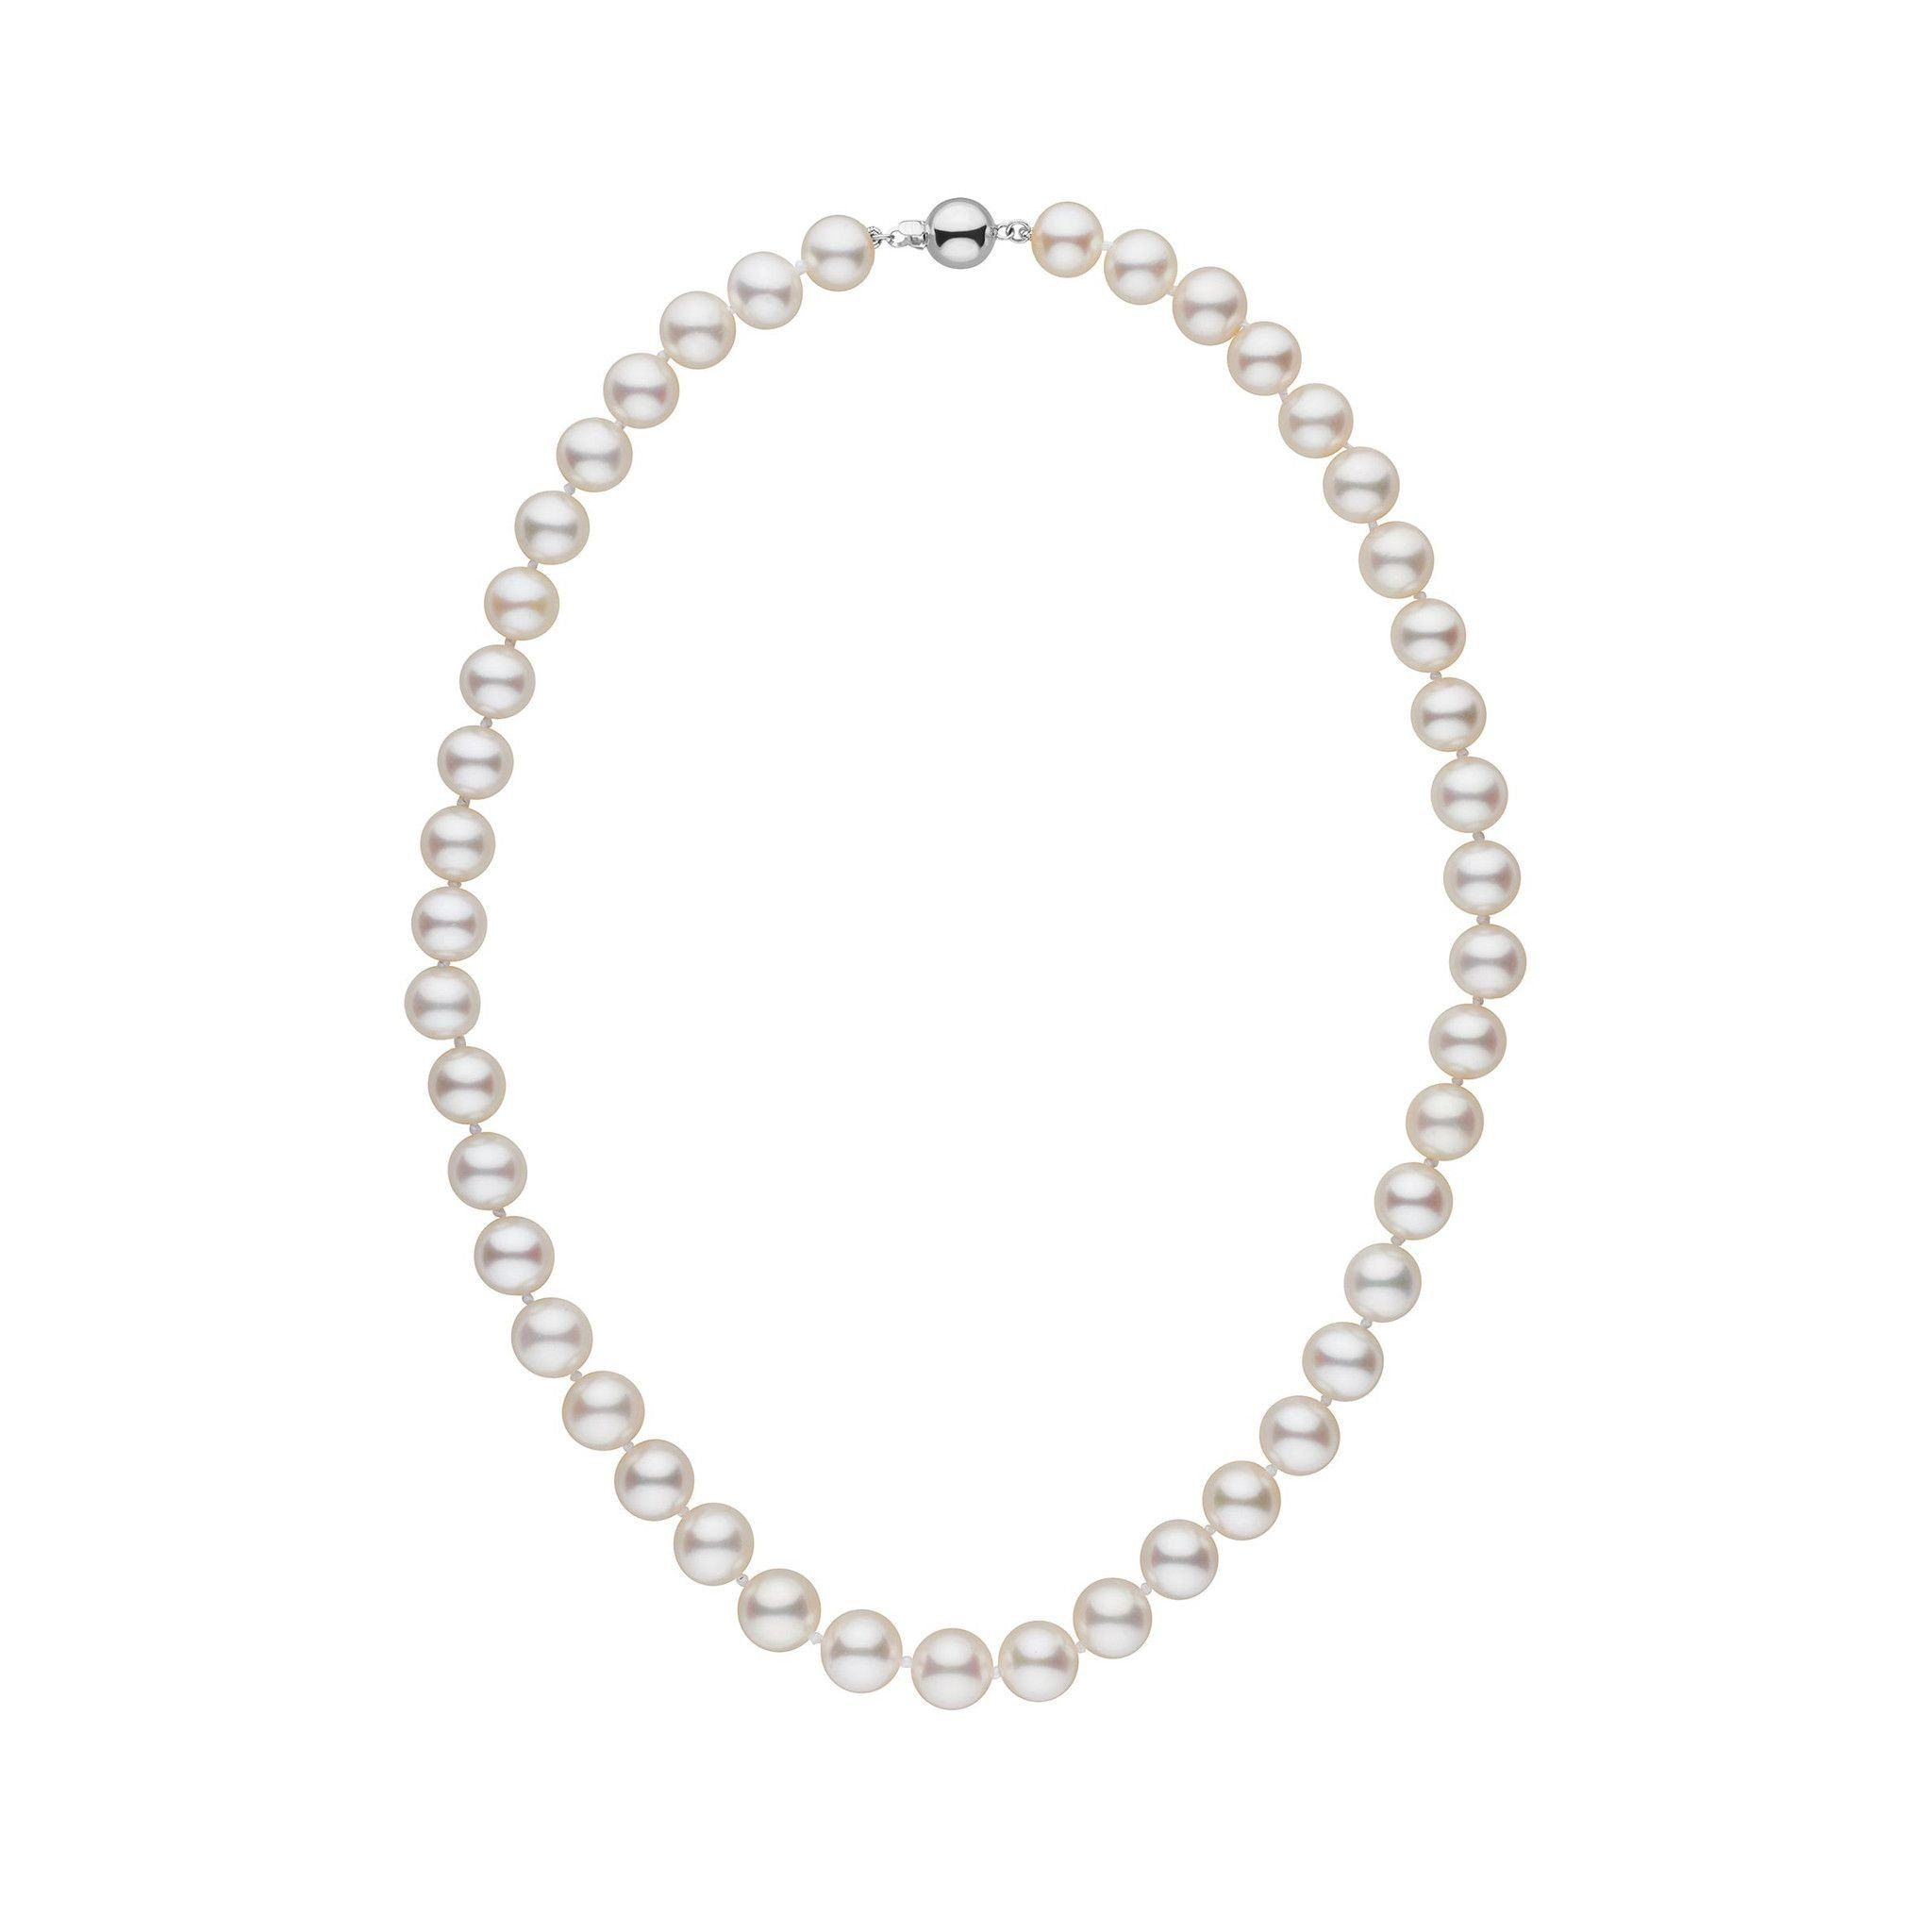 8.5-9.0 mm 16 Inch AAA White Freshwater Pearl Necklace